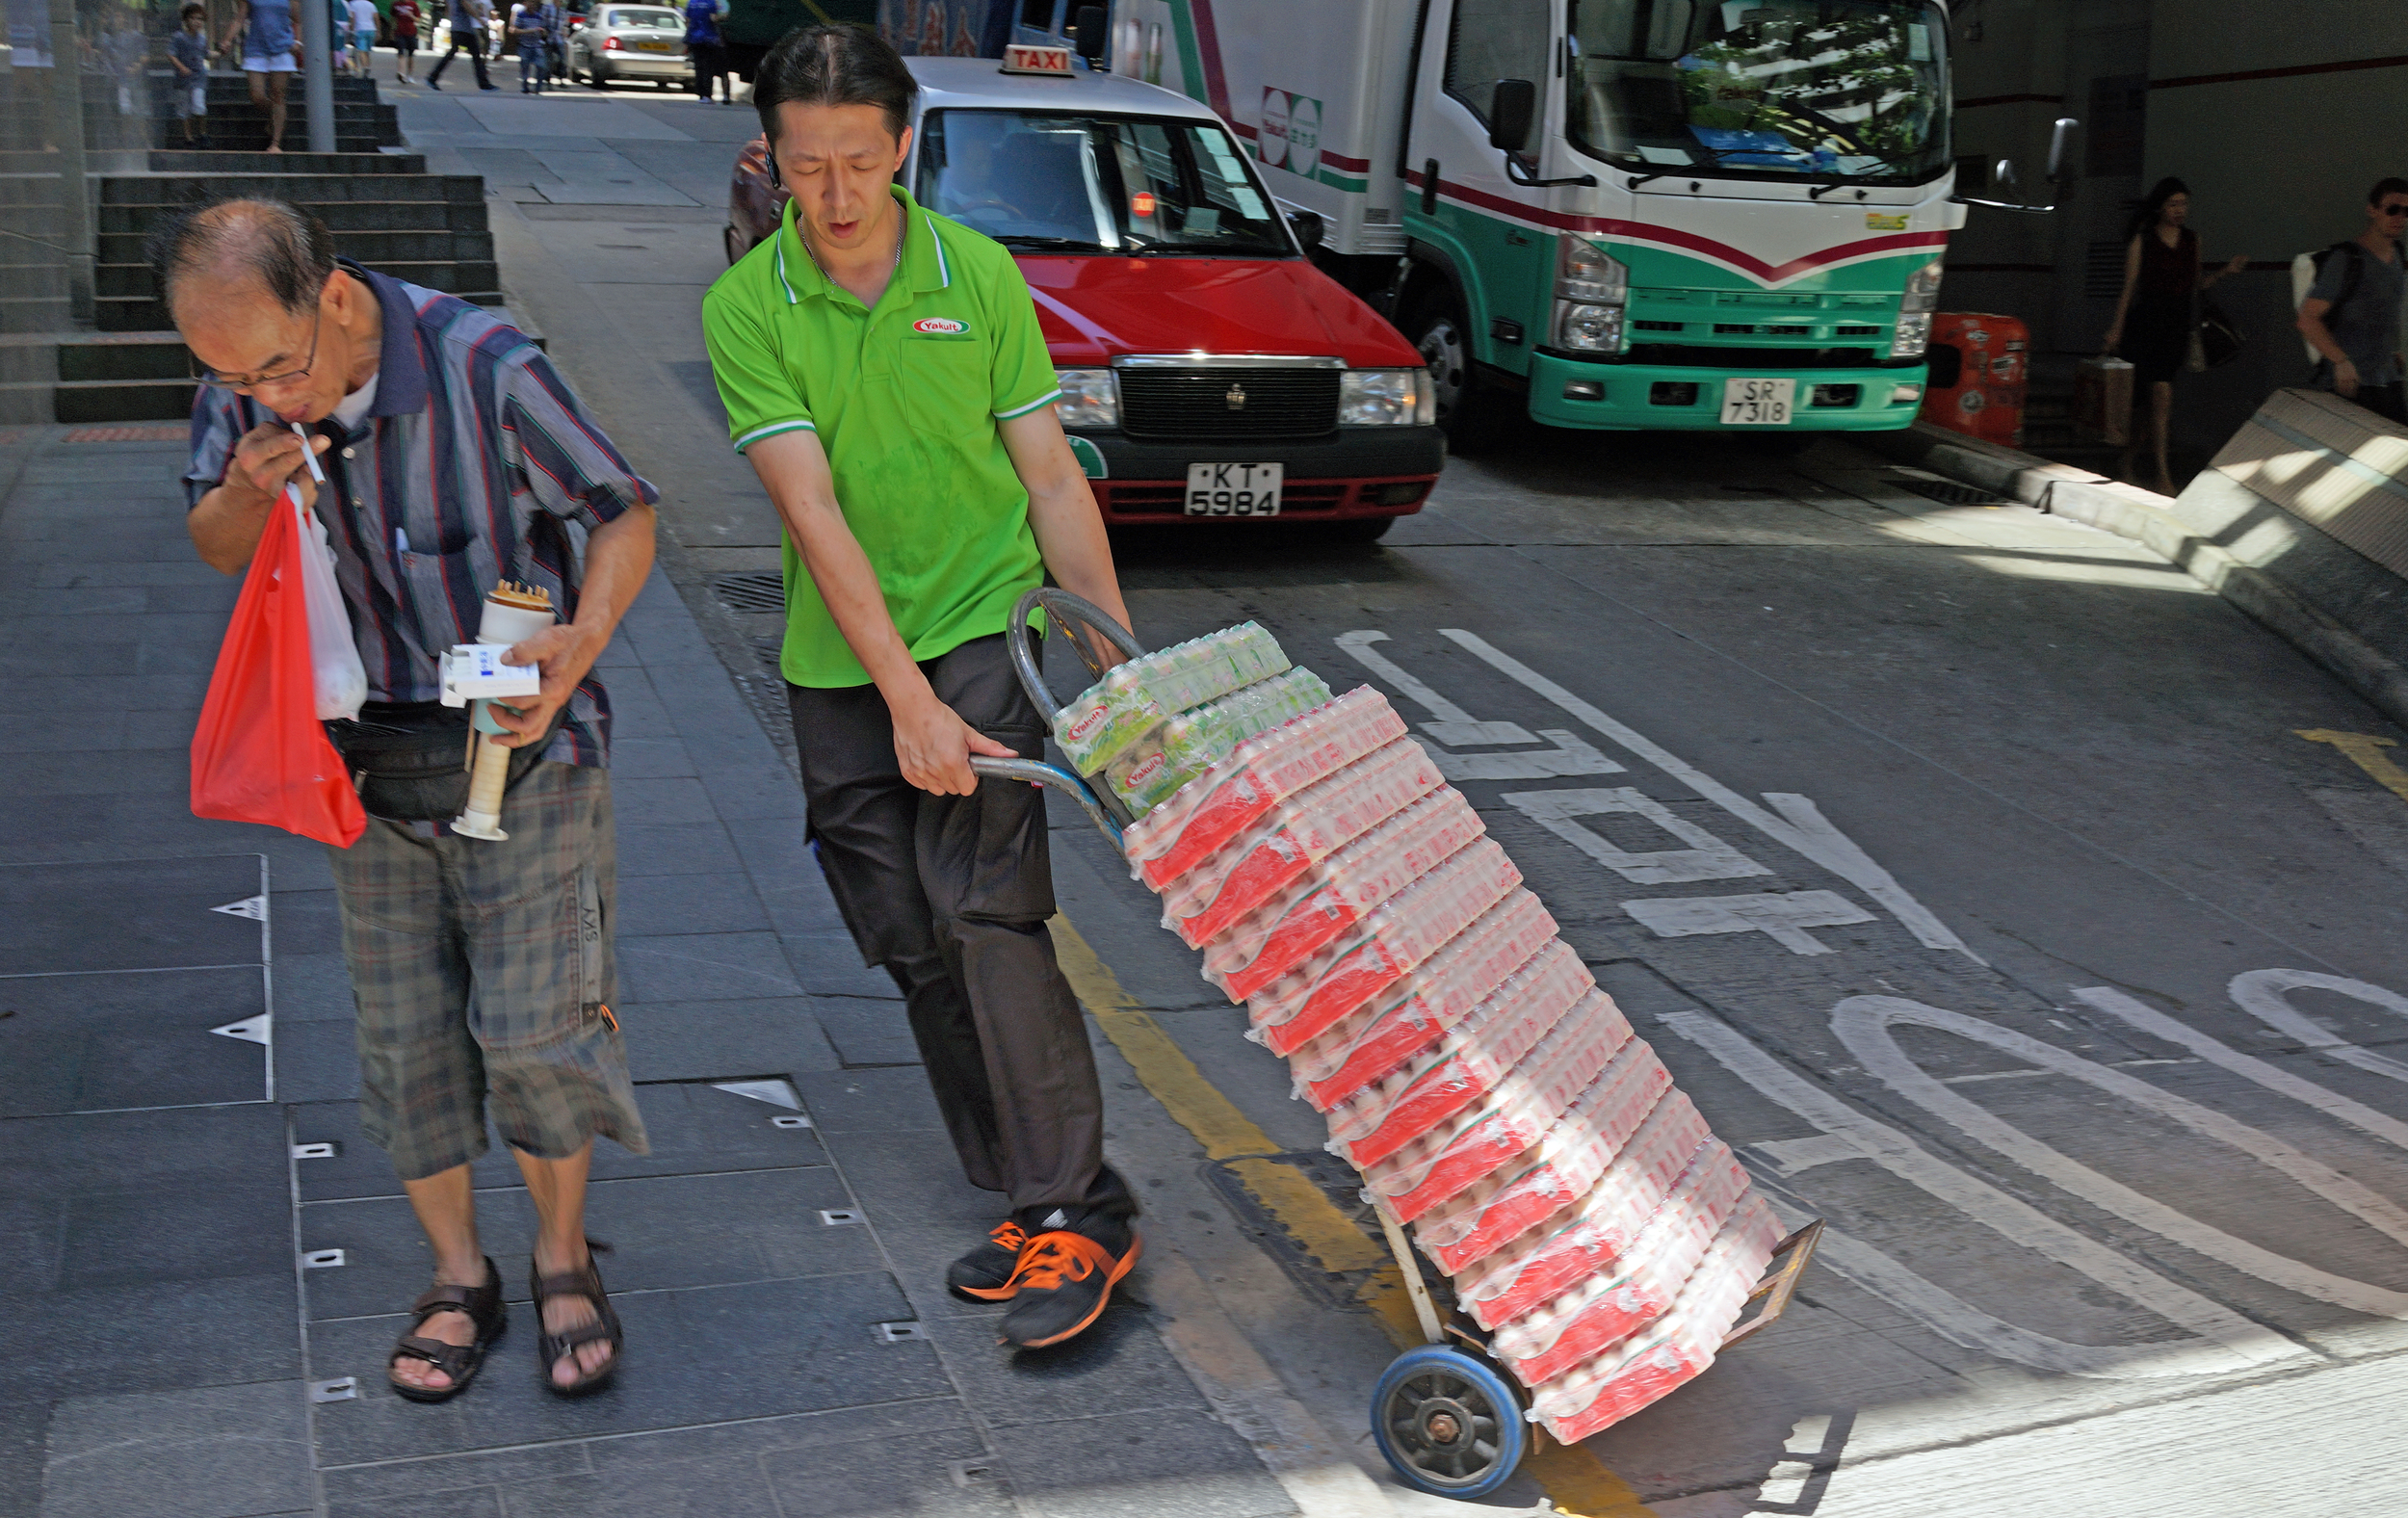 This delivery guy is delivering Yakult a highly addictive probiotic drink that I have been drinking for a very long time and it is also rumoured to have bust enhancing properties for young ladies which accounts for it's huge surge in popularity in Hong Kong.